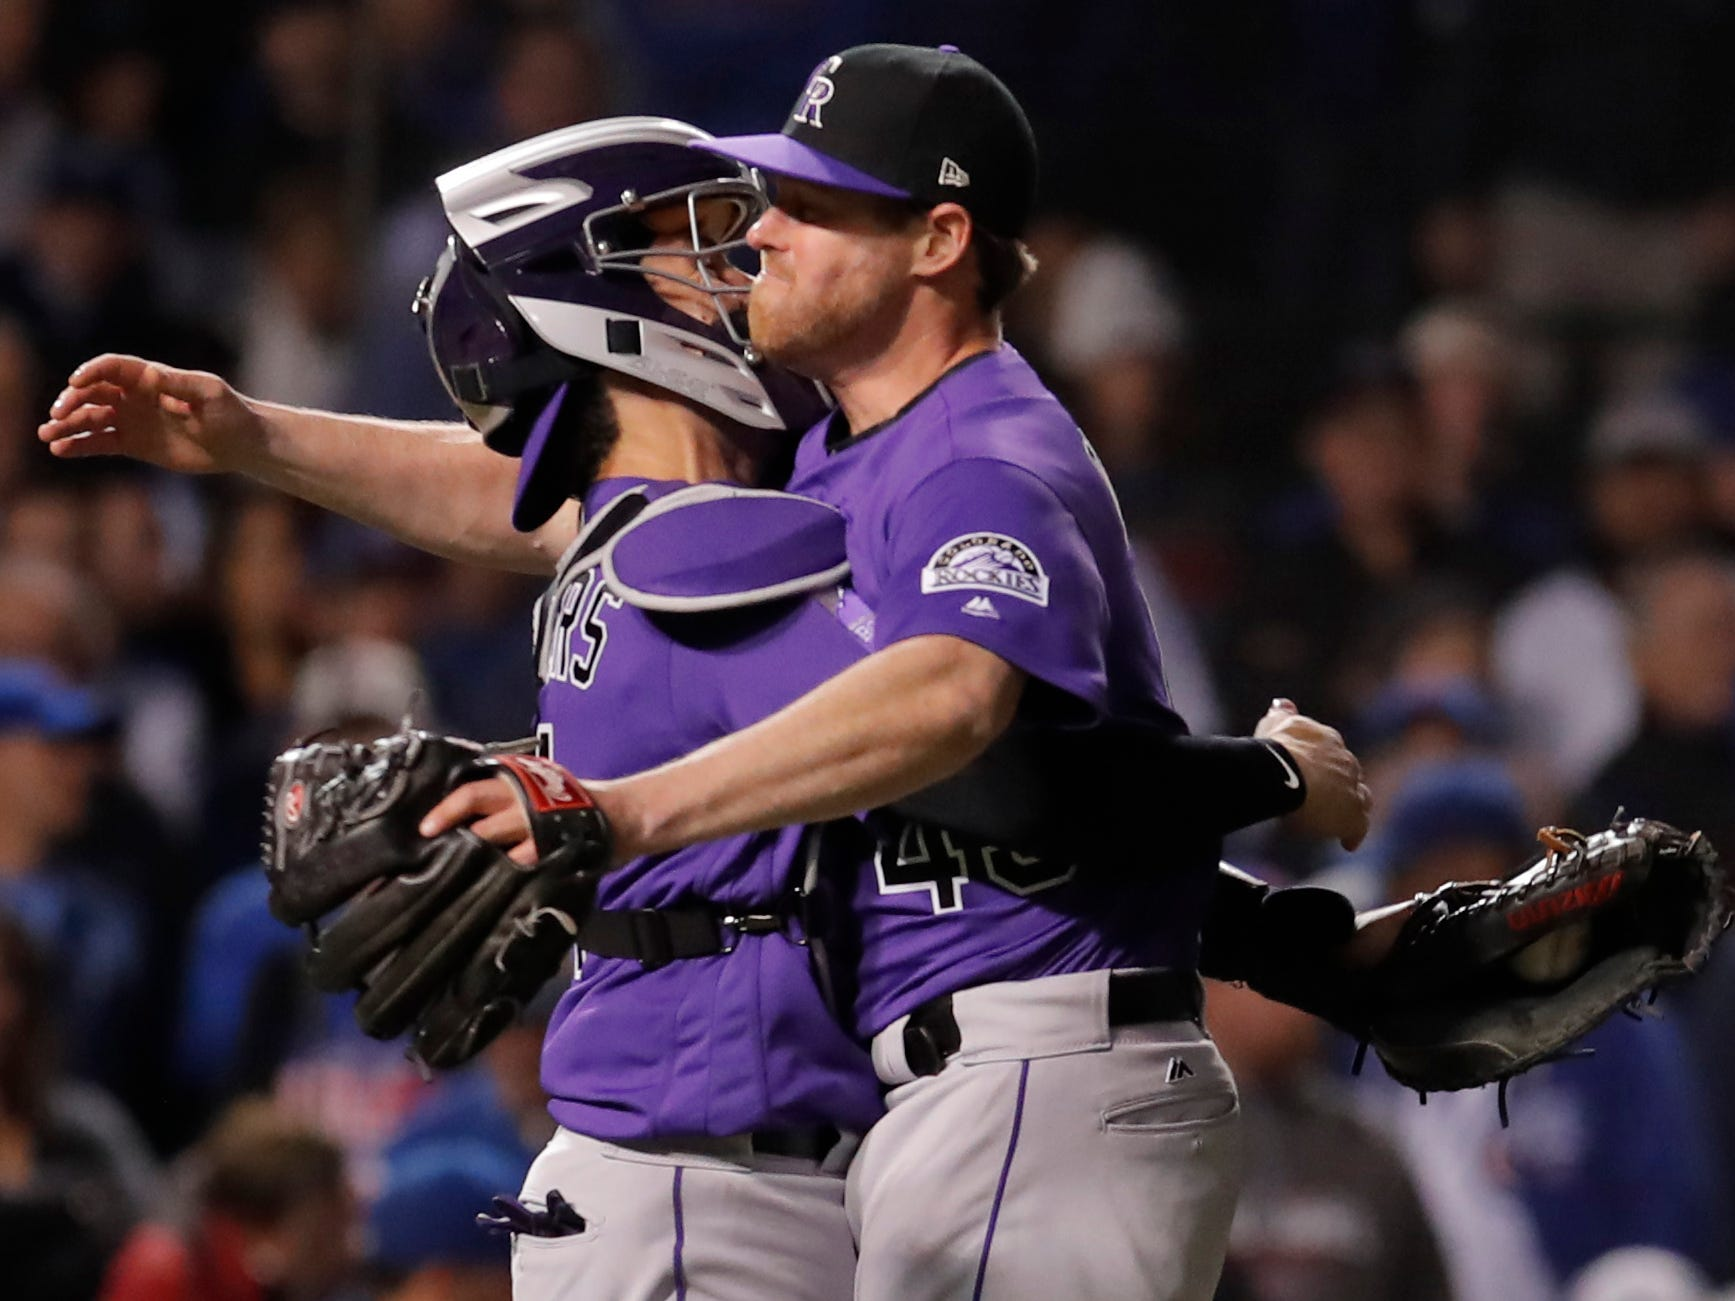 Rockies relief pitcher Scott Oberg celebrates with Tony Wolters after defeating the Cubs in the National League wild-card game at Wrigley Field.